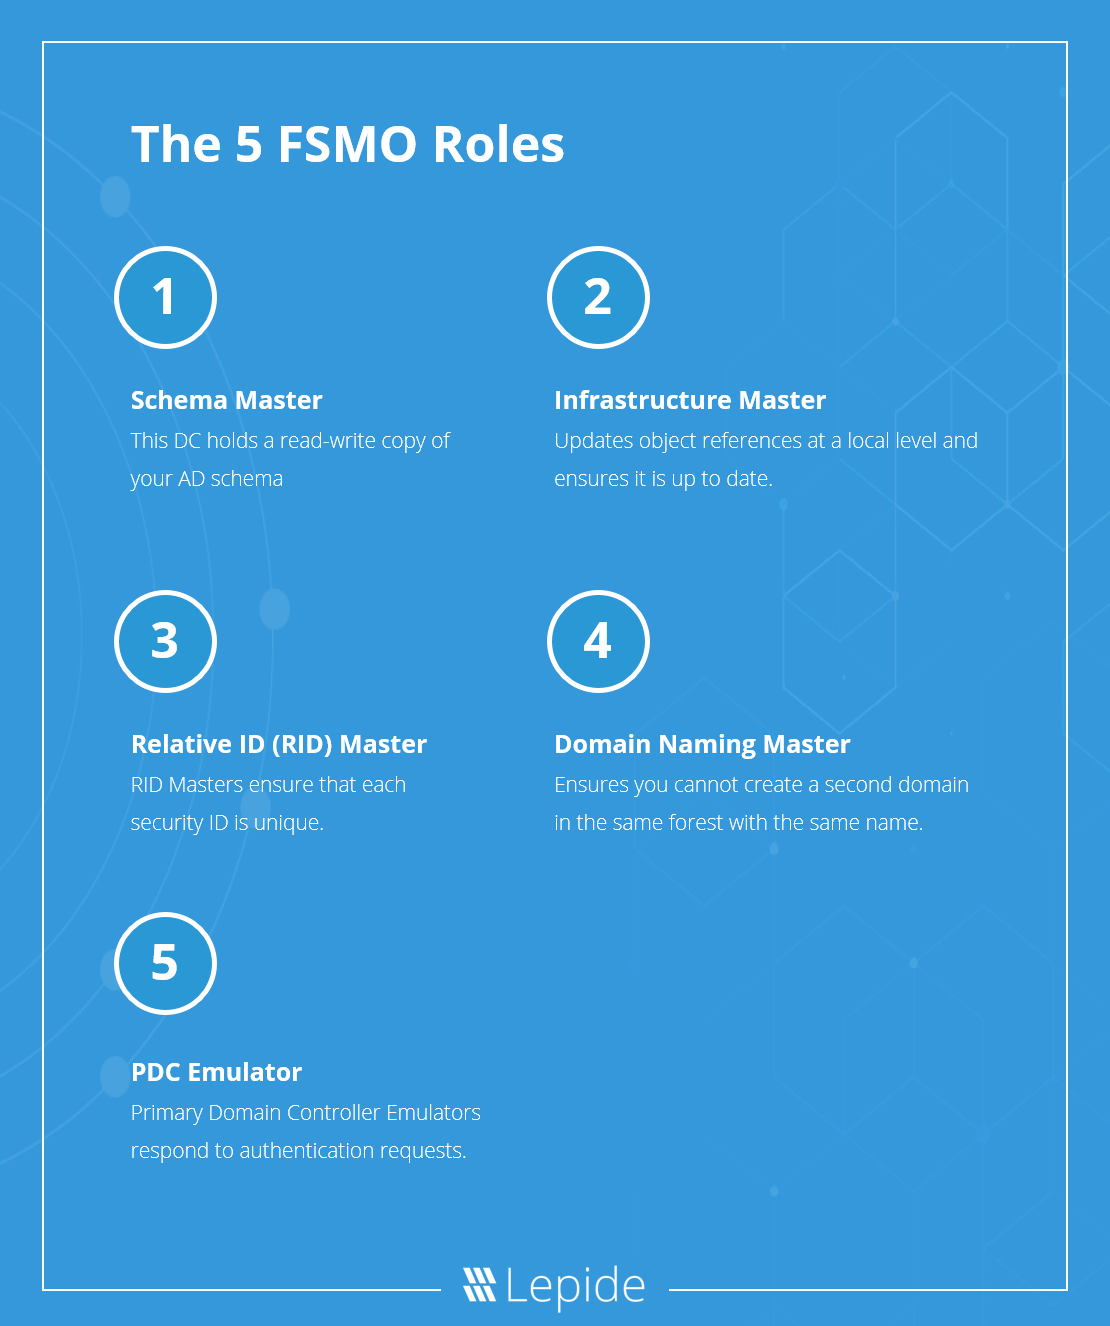 The 5 FSMO Roles in Active Directory